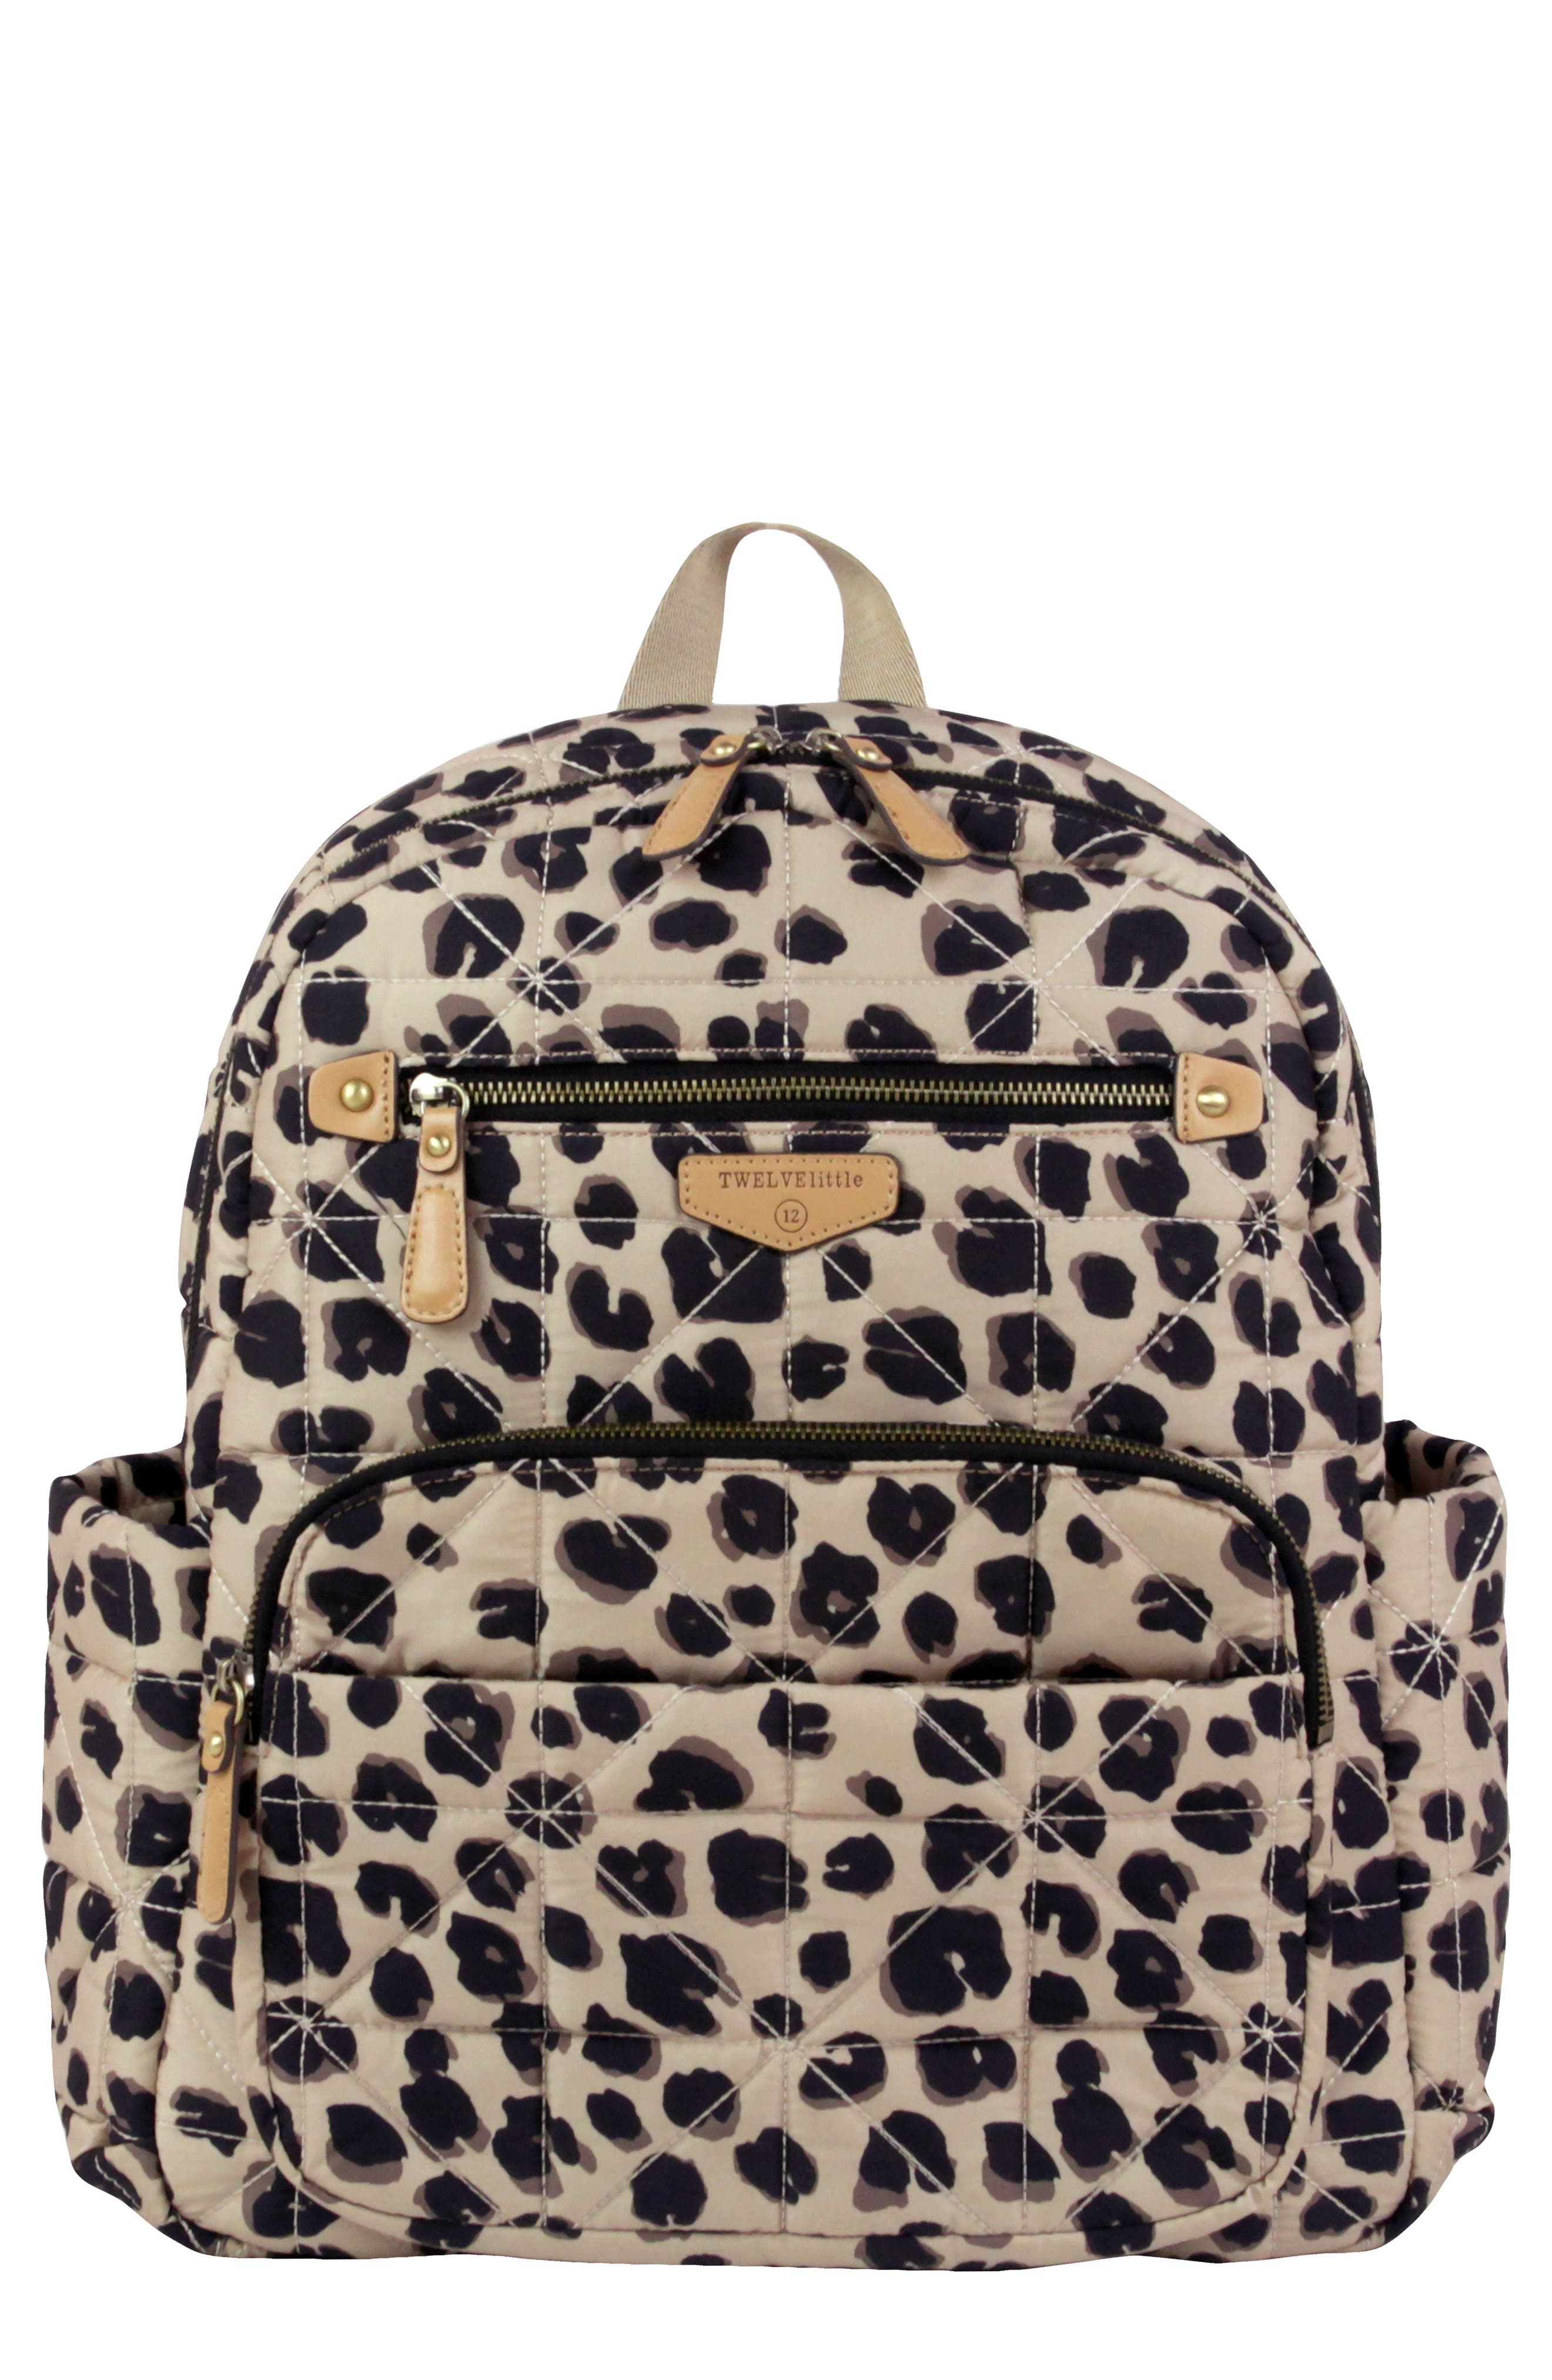 TWELVELITTLE Quilted Water Resistant Nylon Diaper Backpack, Main, color, LEOPARD PRINT